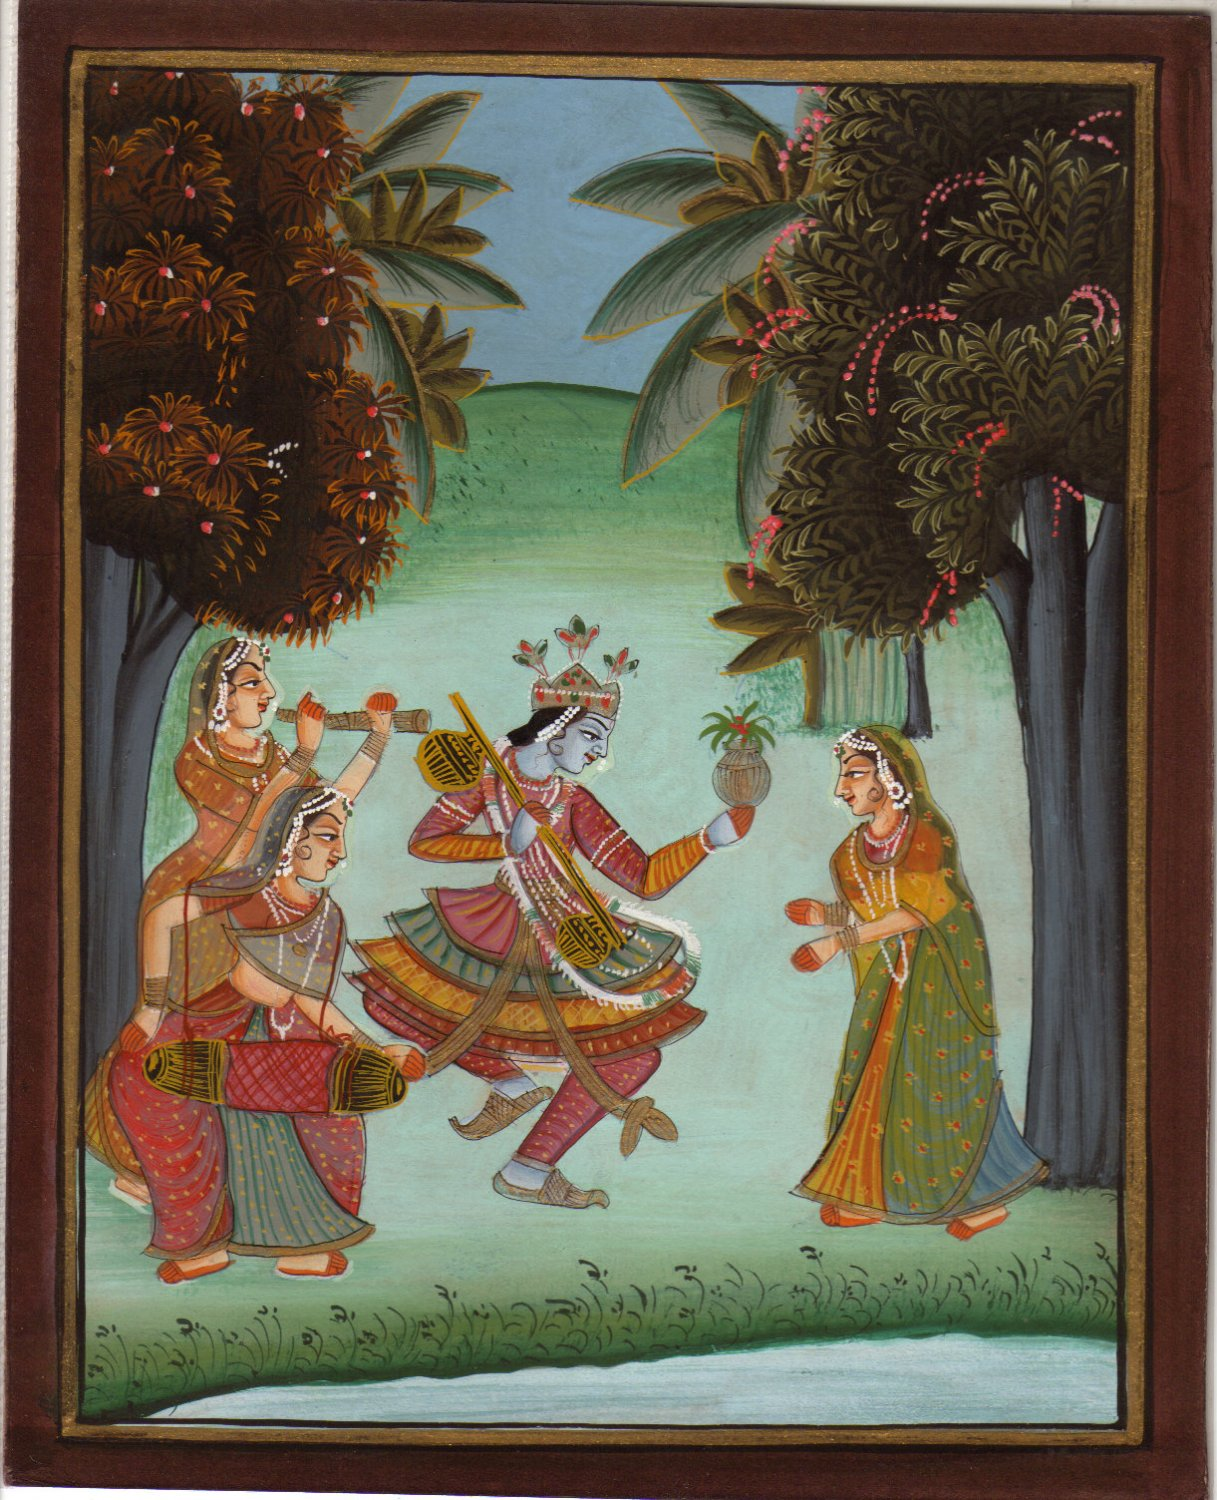 LORD KRISHNA RADHA Original HANDMADE Hindu Religious God Goddess Watercolor Art